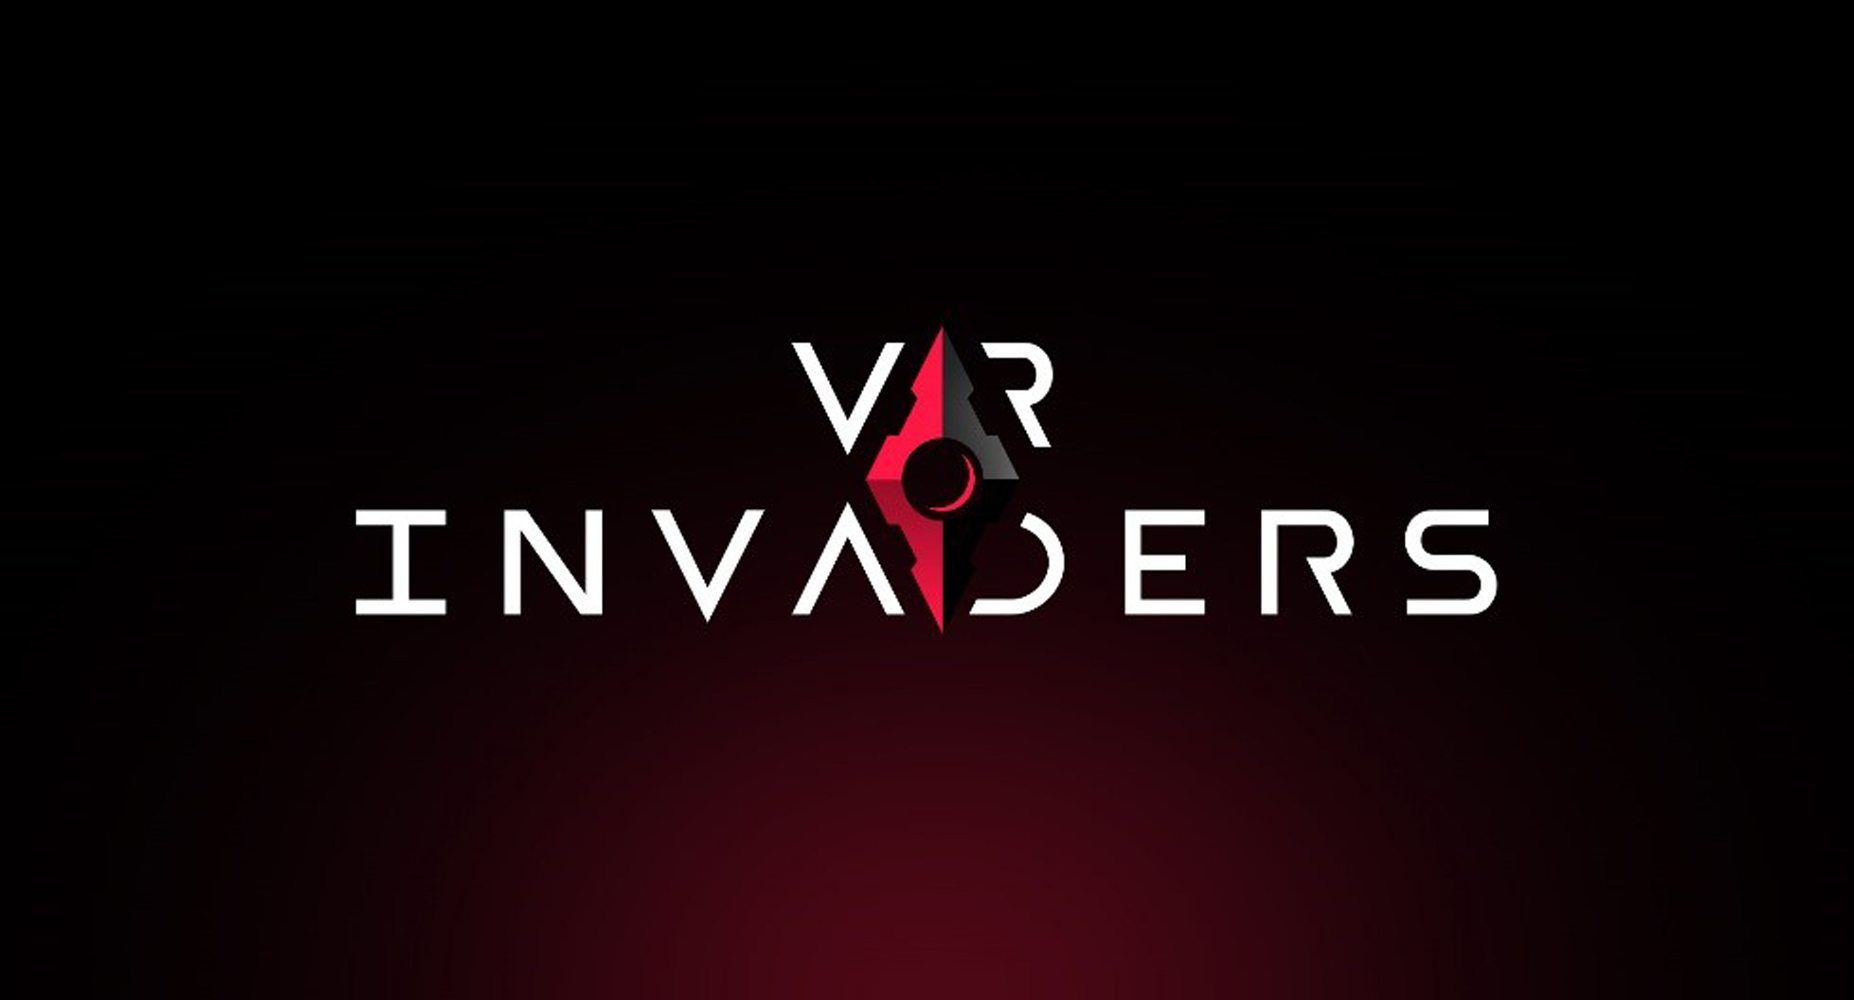 VR INVADERS Heading to Steam Dec. 15